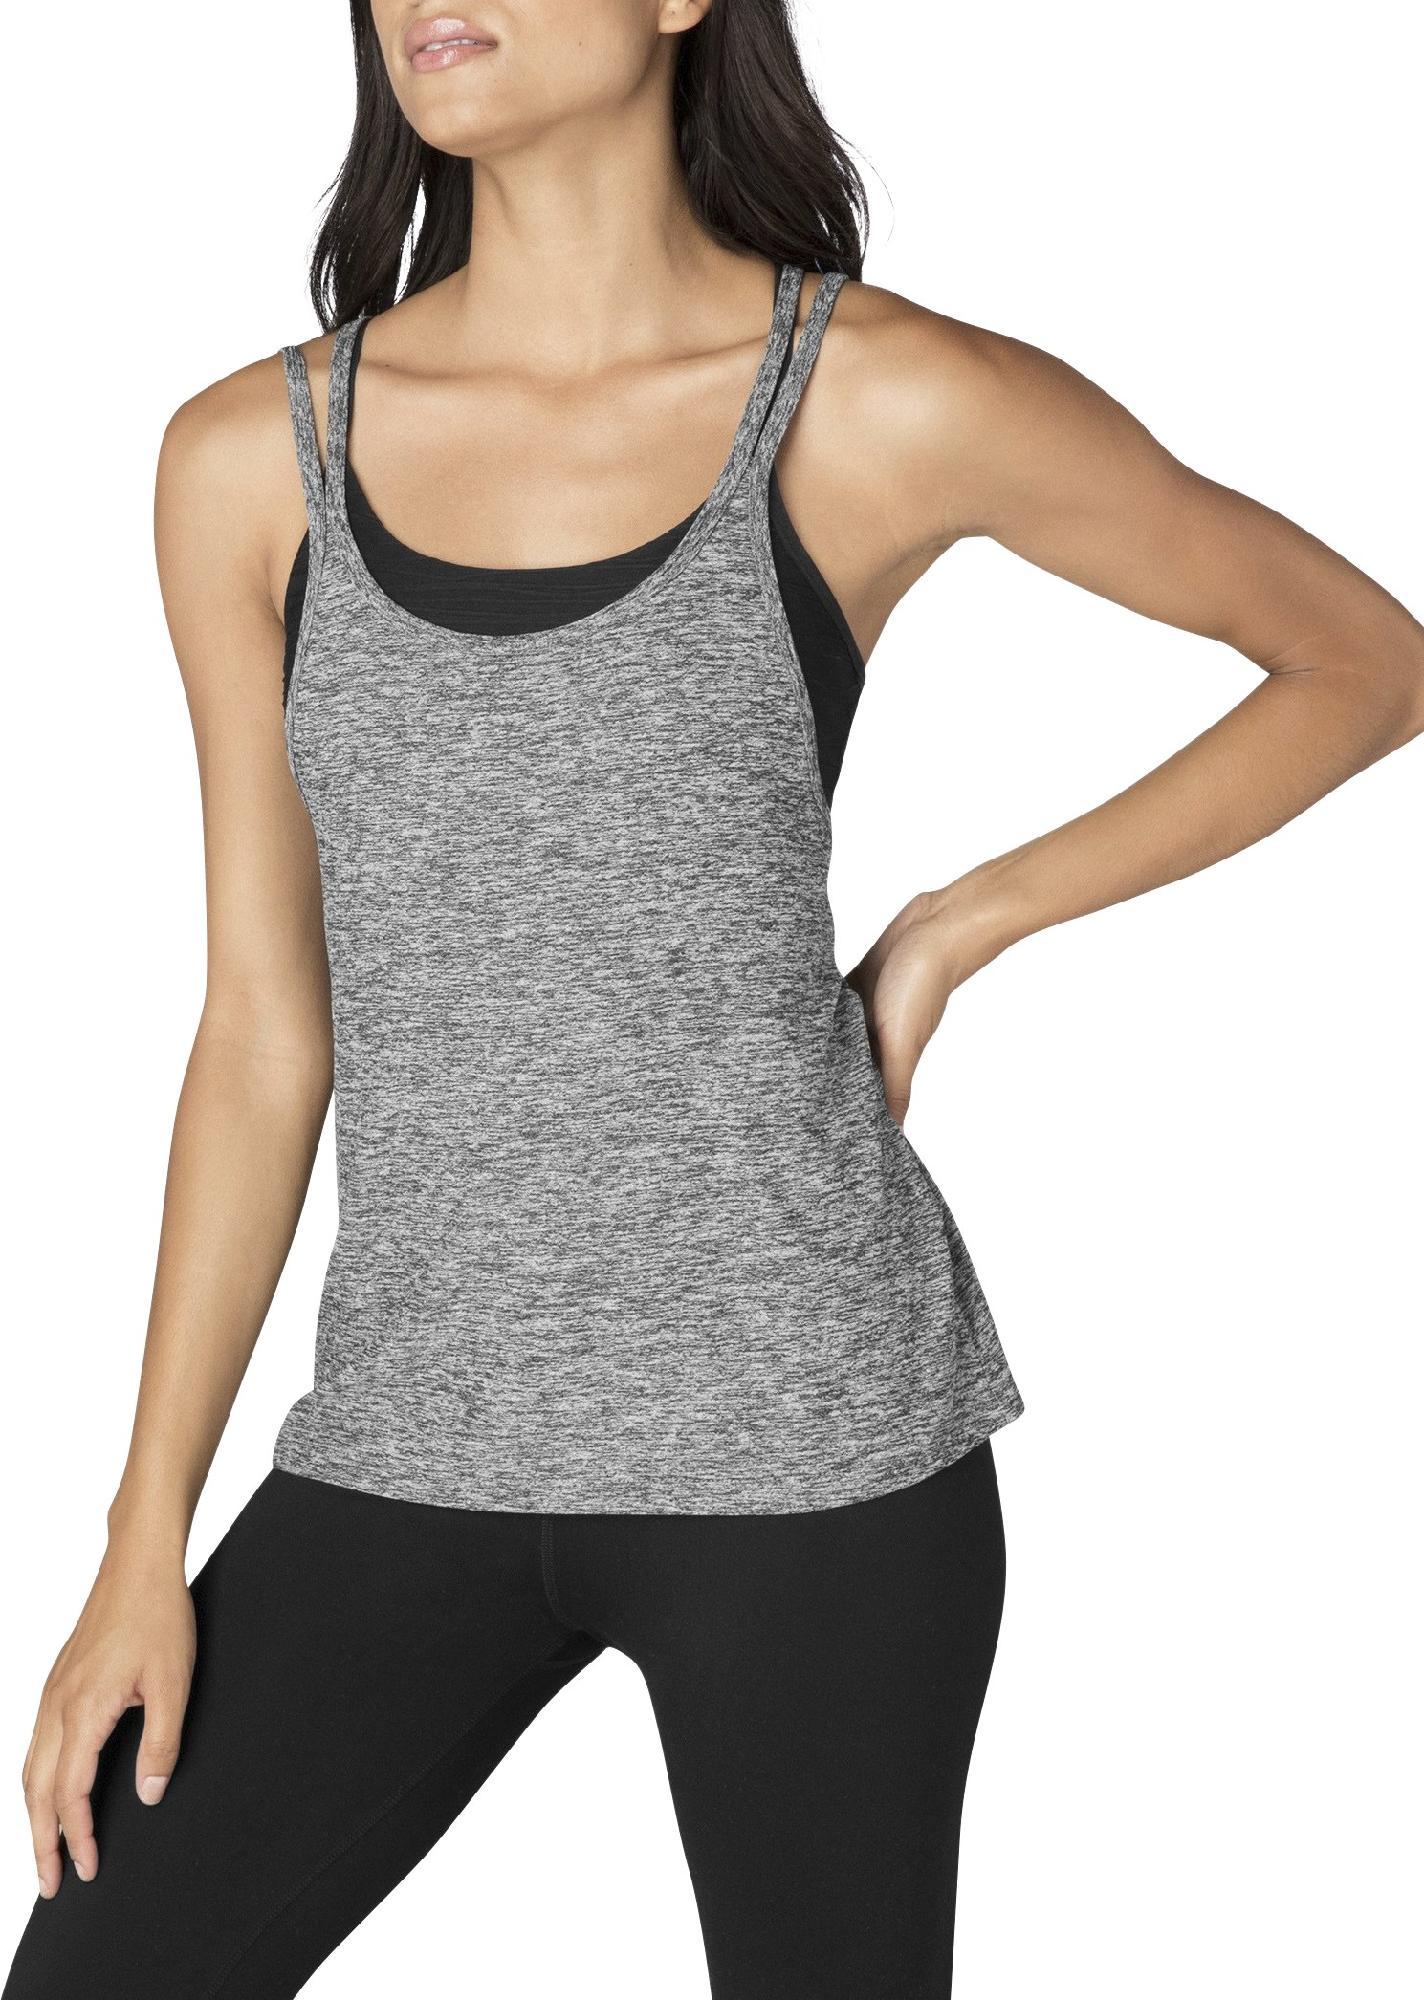 Beyond Yoga Weekend Traveler Strappy Tank Top - Women's